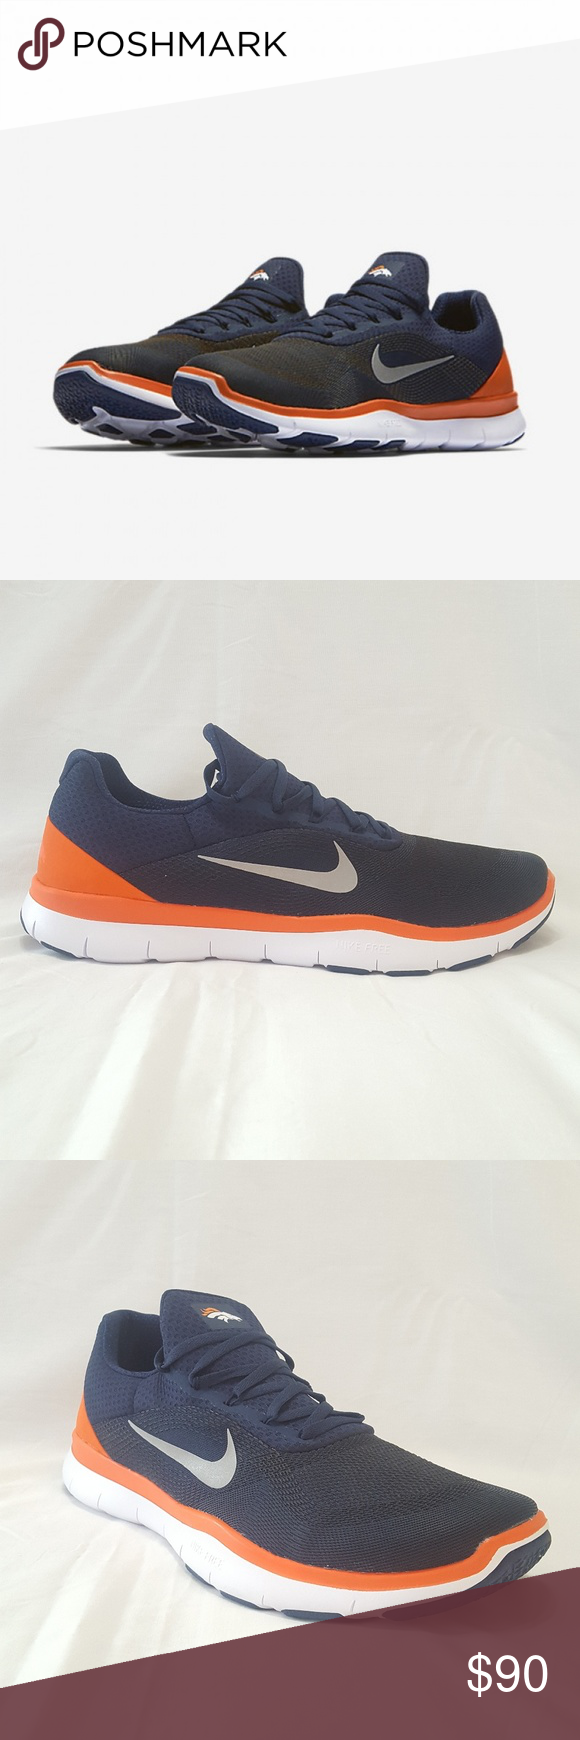 best authentic 7dadb a3fb4 Men s Nike Free Trainer V7 NFL 🌟Limited Edition🌟 100% Authentic - Limited  Edition